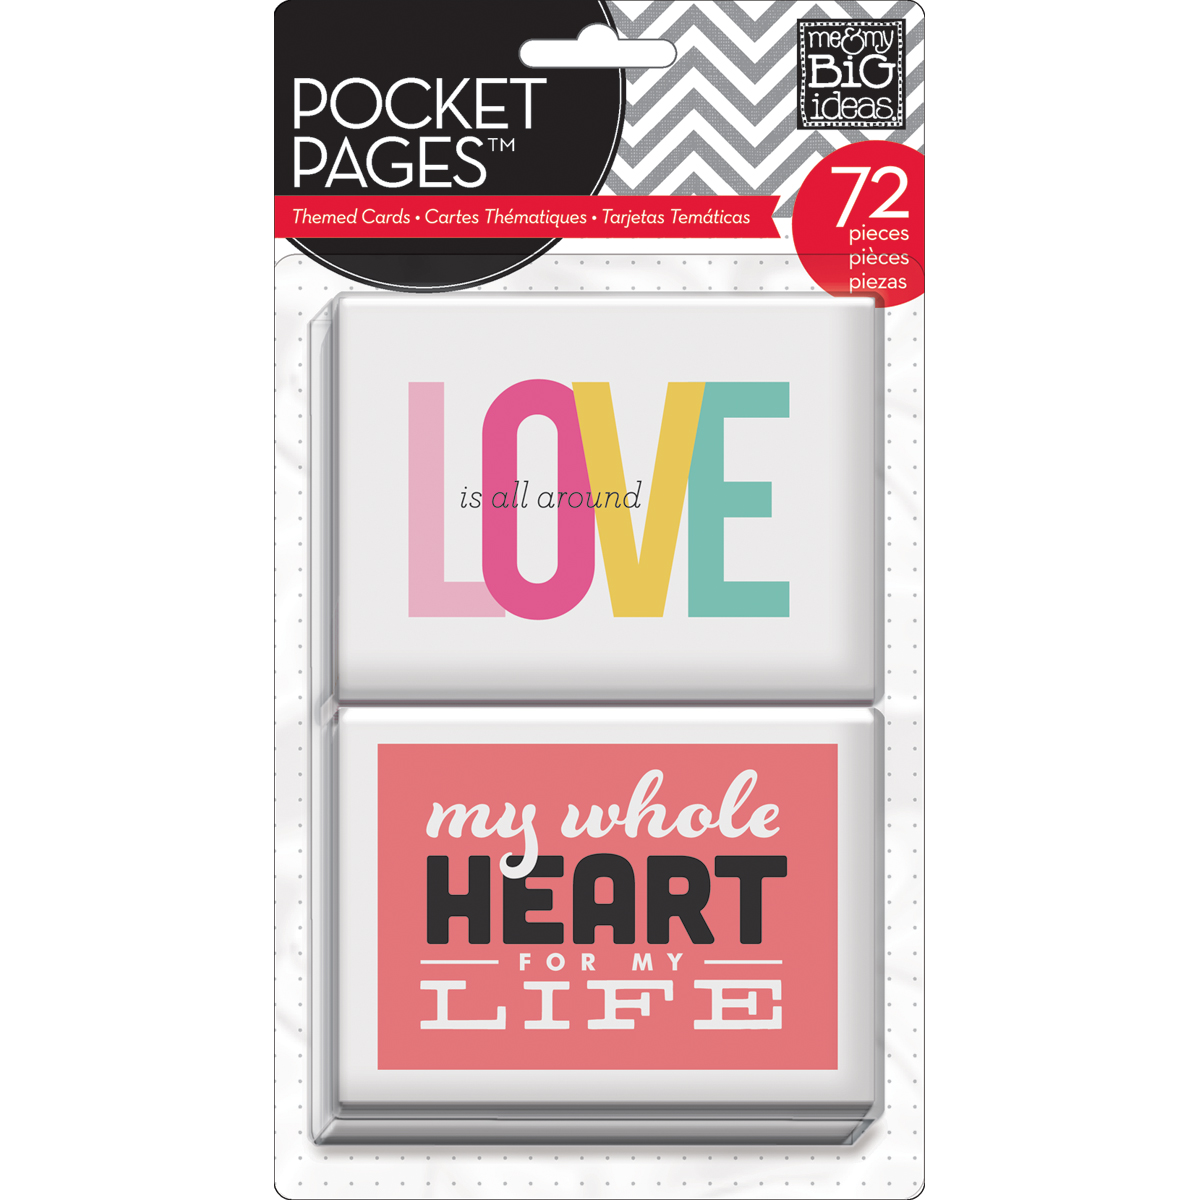 "Me&My Big Ideas Love Pocket Pages Cards 3""x4"""